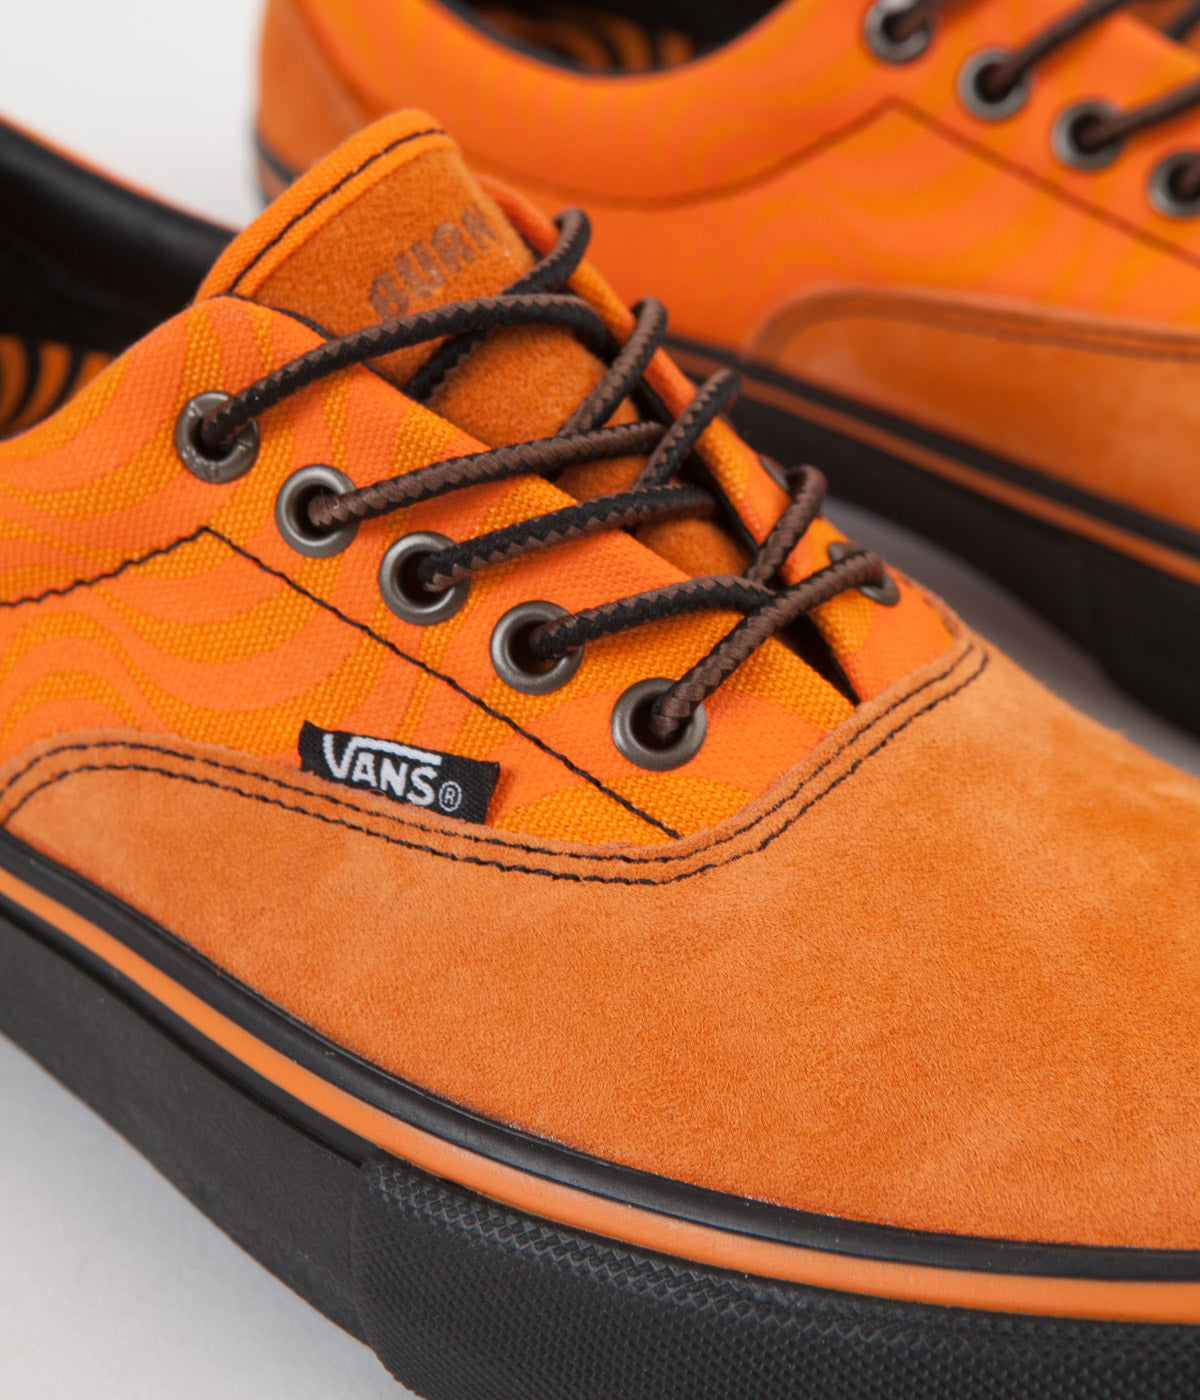 15e76a3d4251a4 ... Vans x Spitfire Era Pro Shoes - Cardiel   Orange ...